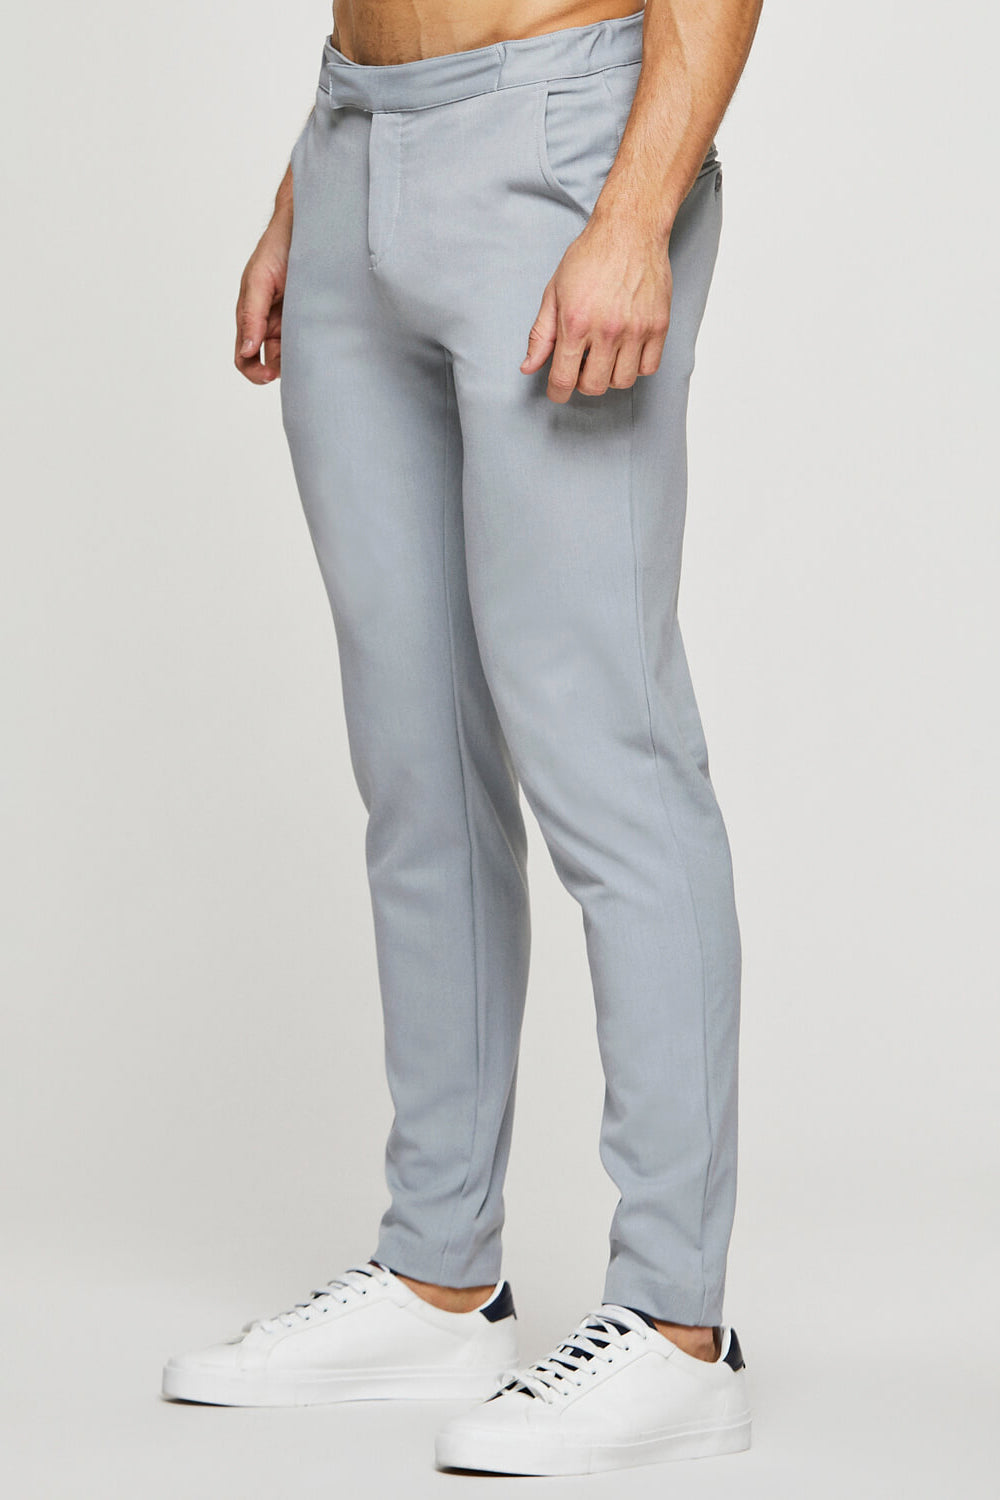 365 Trousers in Grey